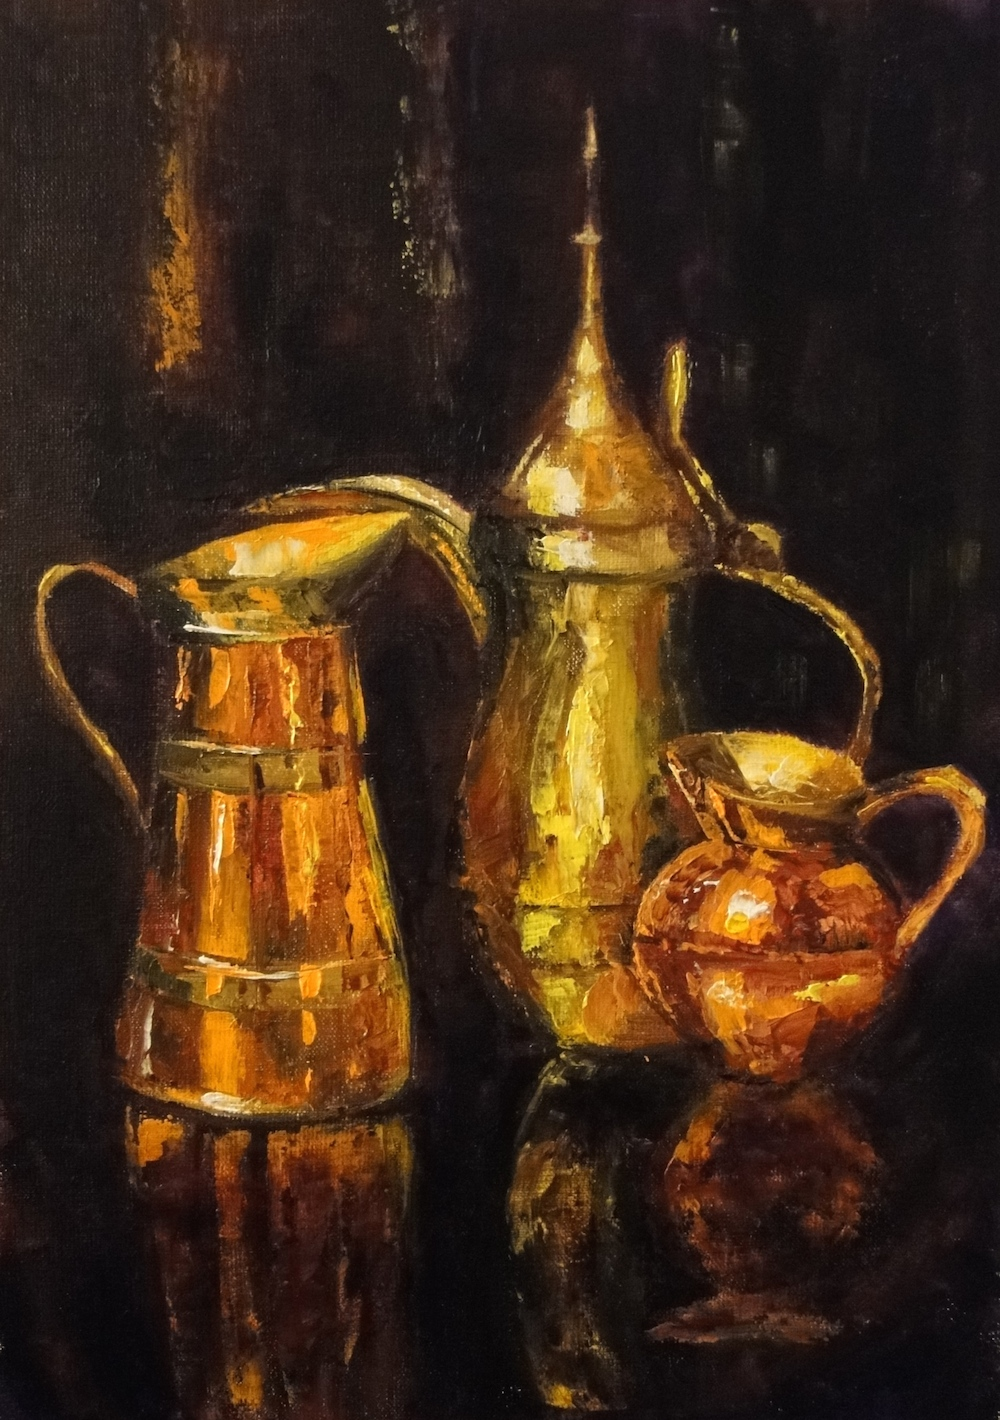 oil painting, still life, copper, metal,